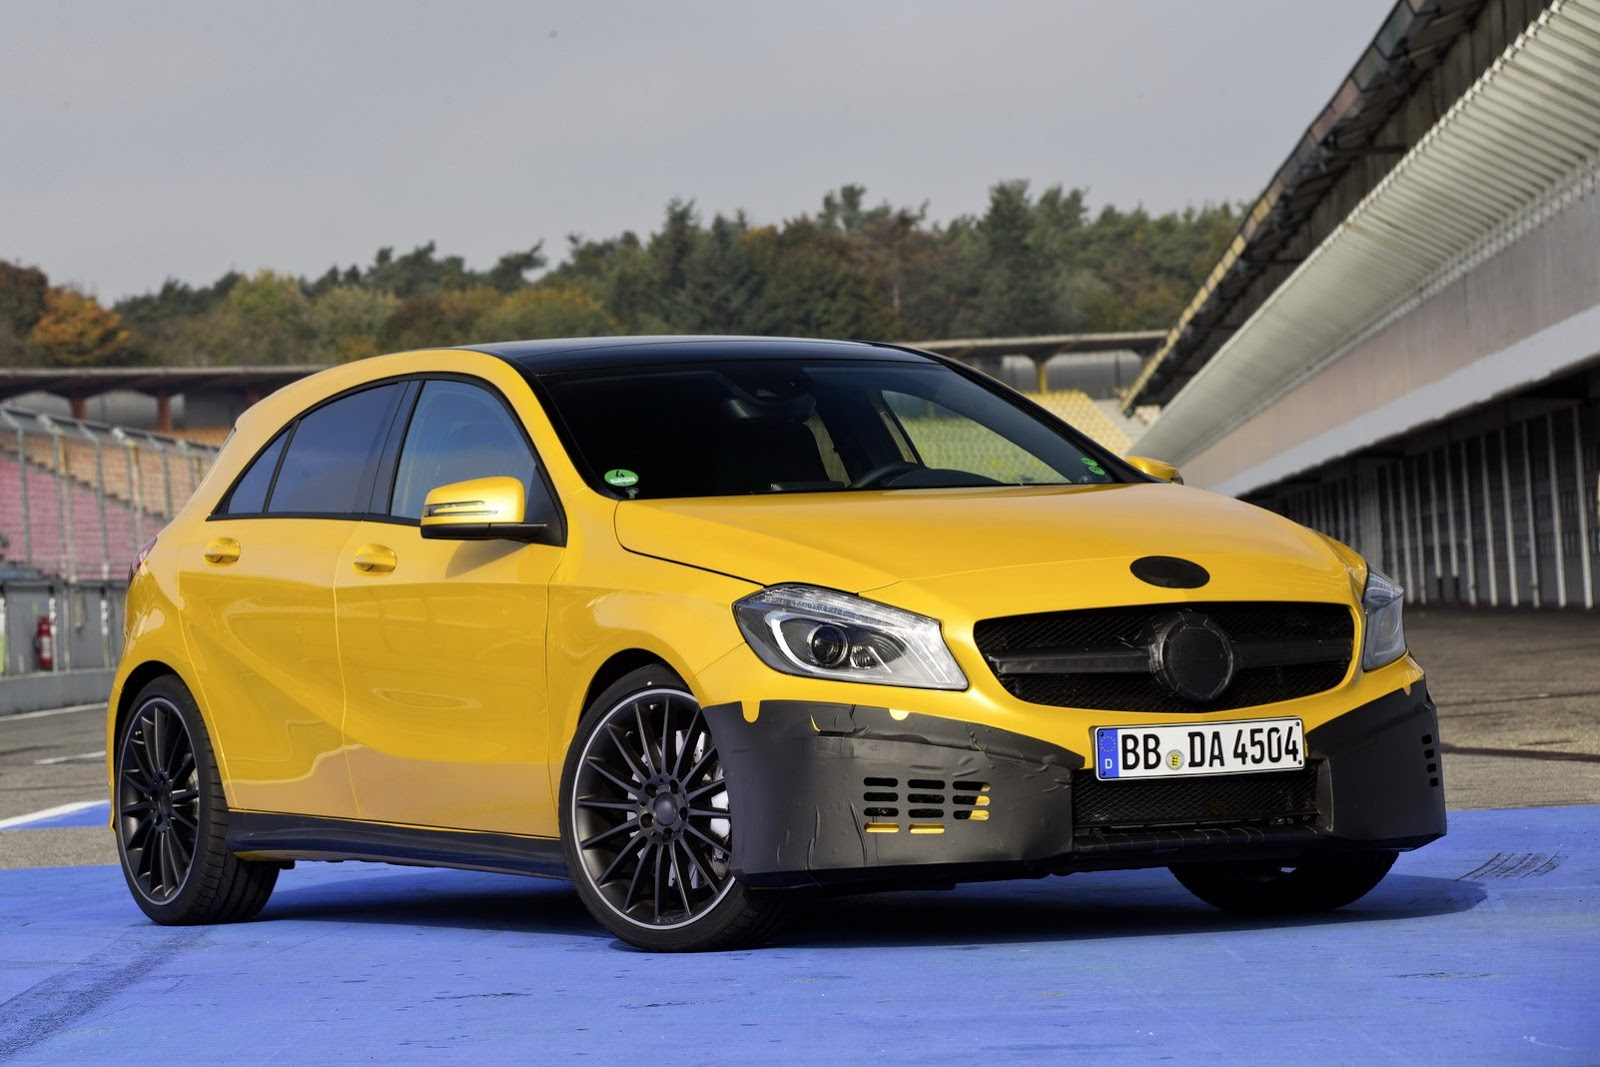 foto mercedes a45 amg yellow mercedes a klasse a45 amg 002. Black Bedroom Furniture Sets. Home Design Ideas